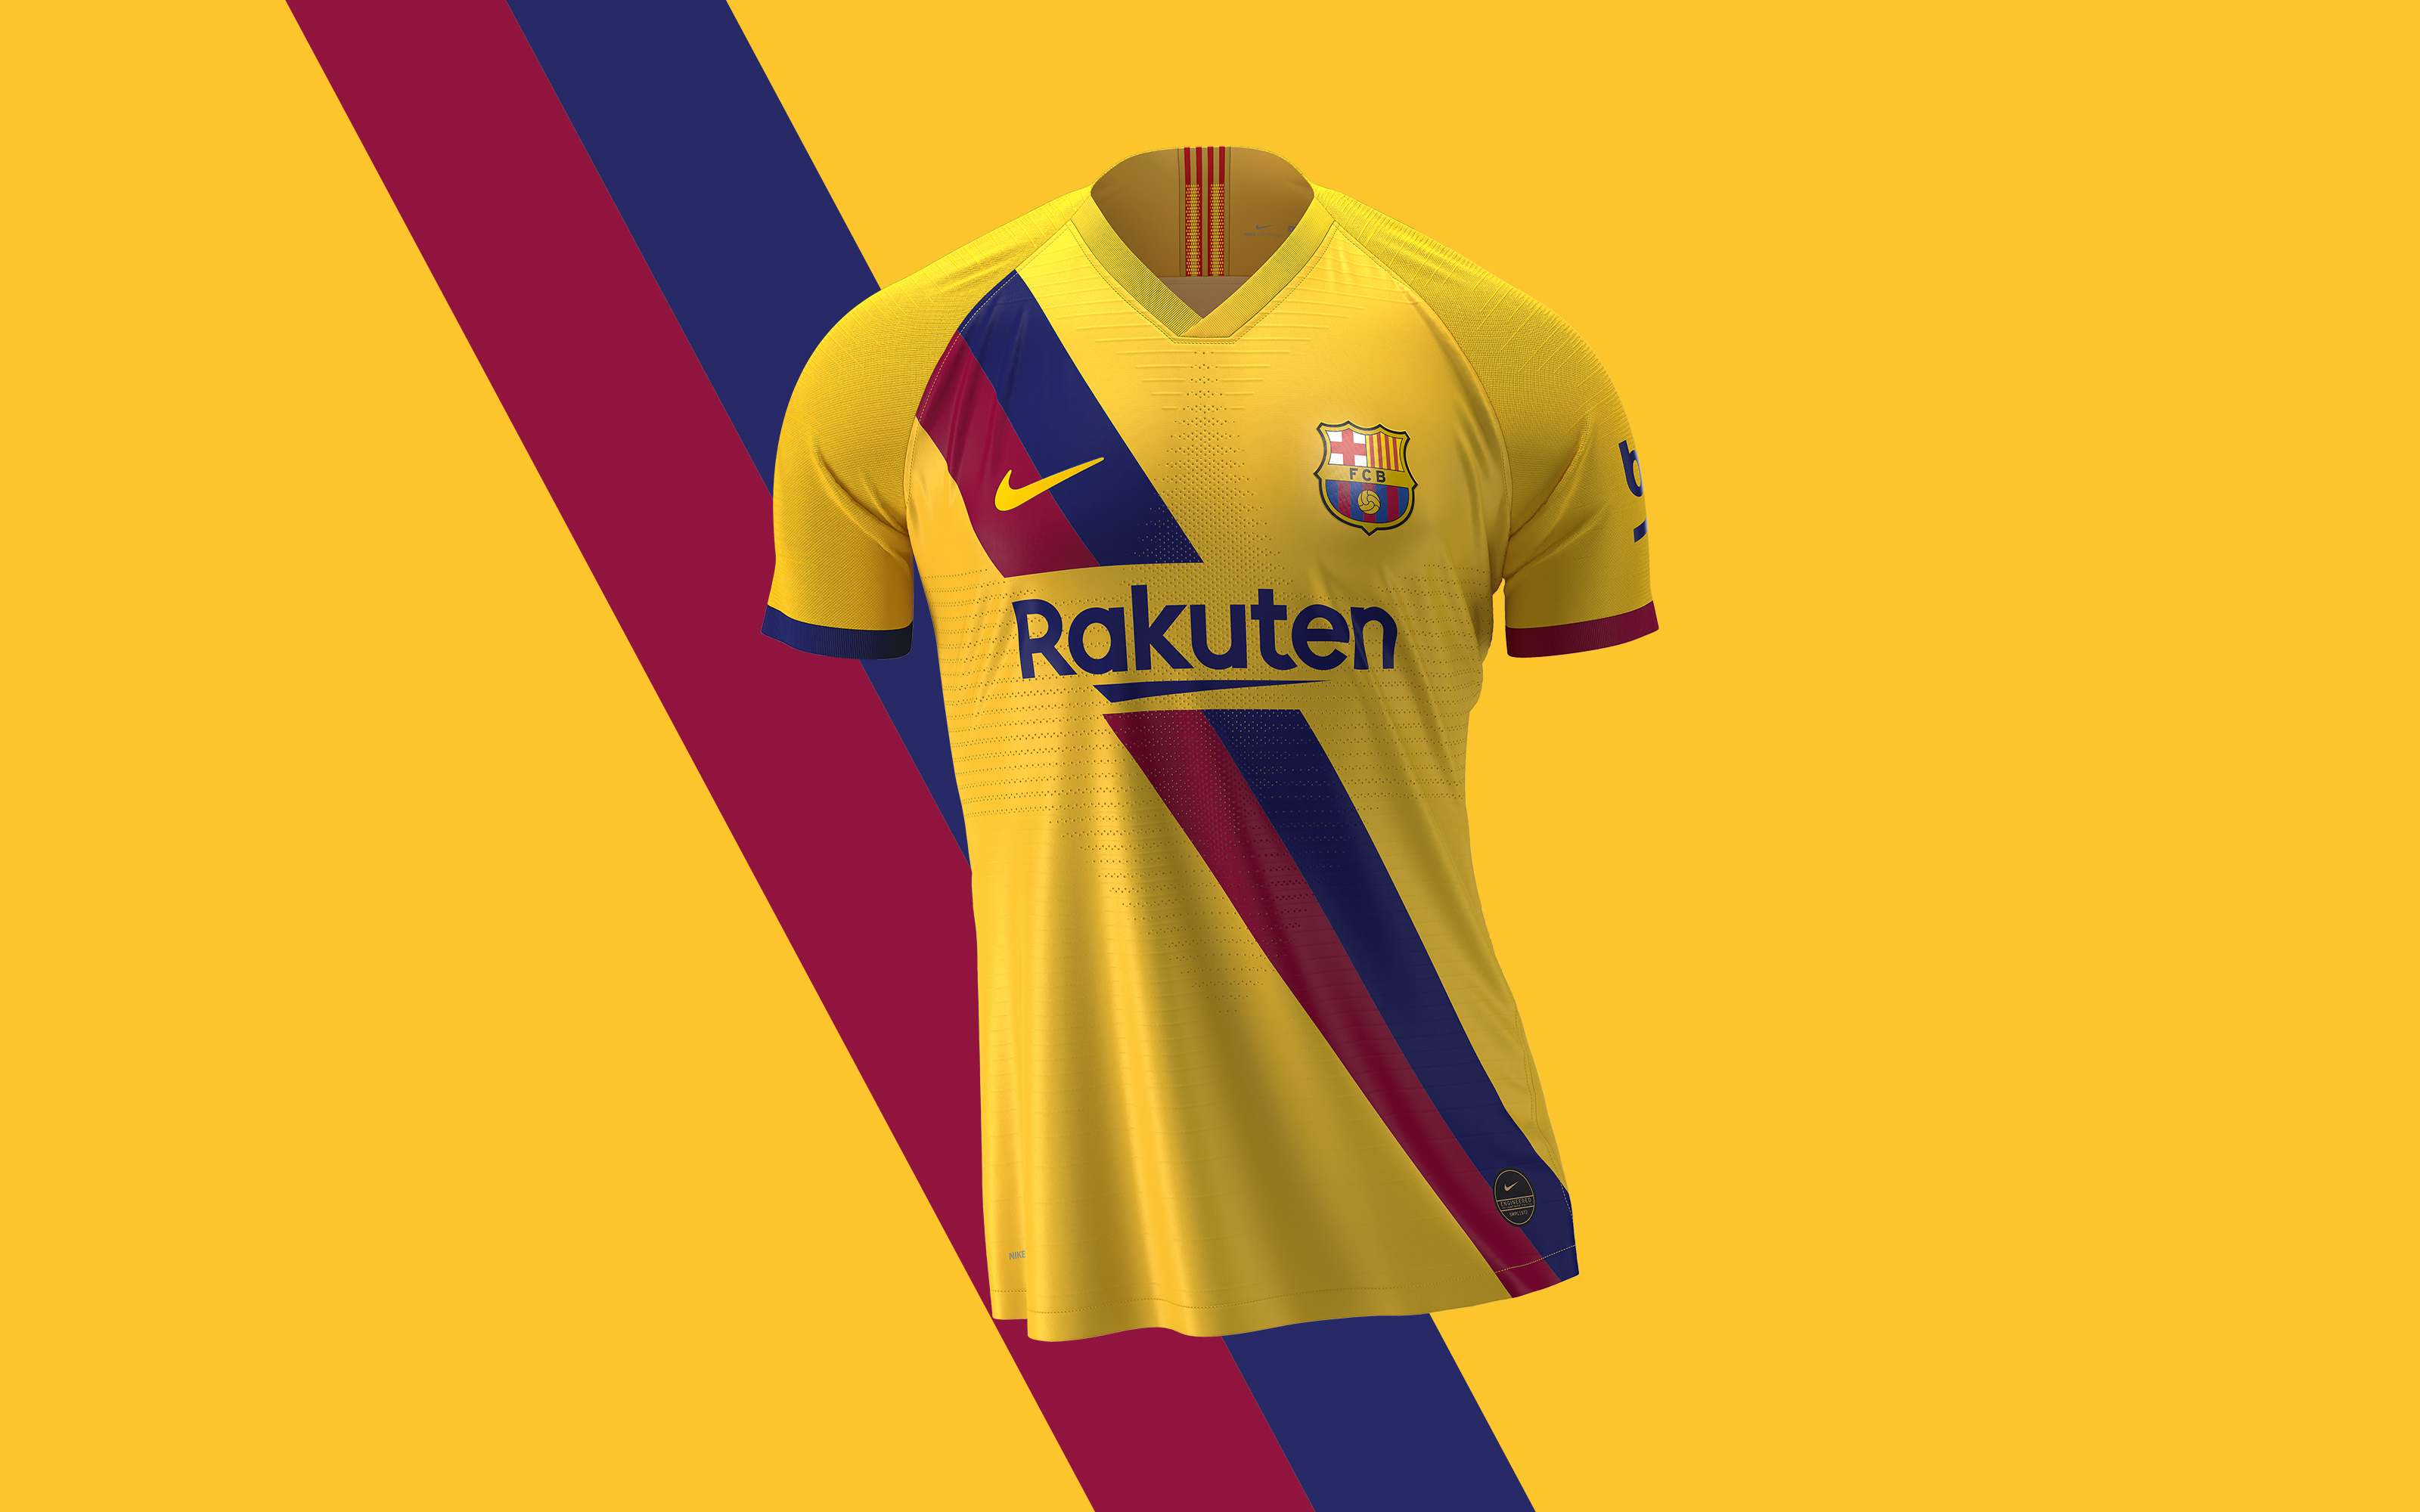 barca away kit to bring back 1979 design in homage to la masia s 40th anniversary barca away kit to bring back 1979